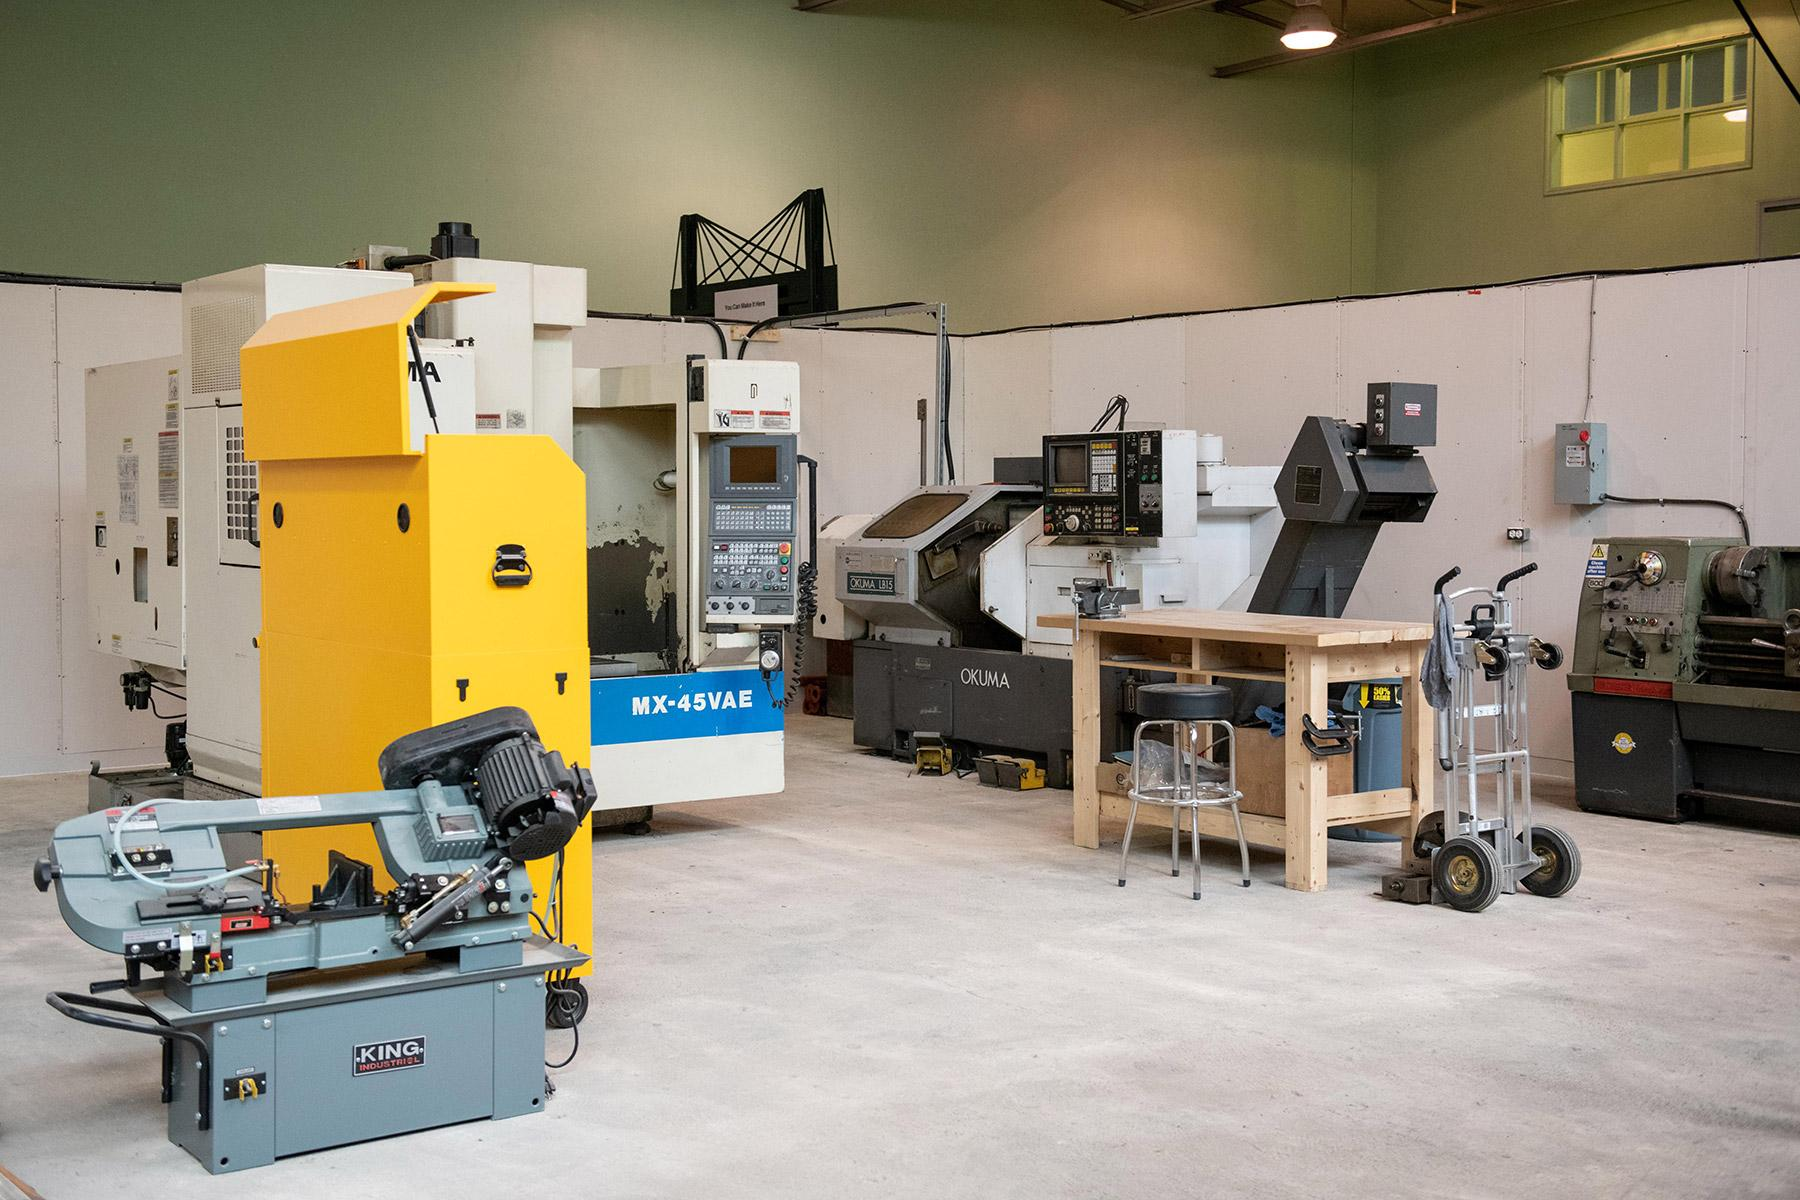 Metal Working Shop includes horizontal bandsaw, Dewalt toolbox, Okuma CNC mill and lathe